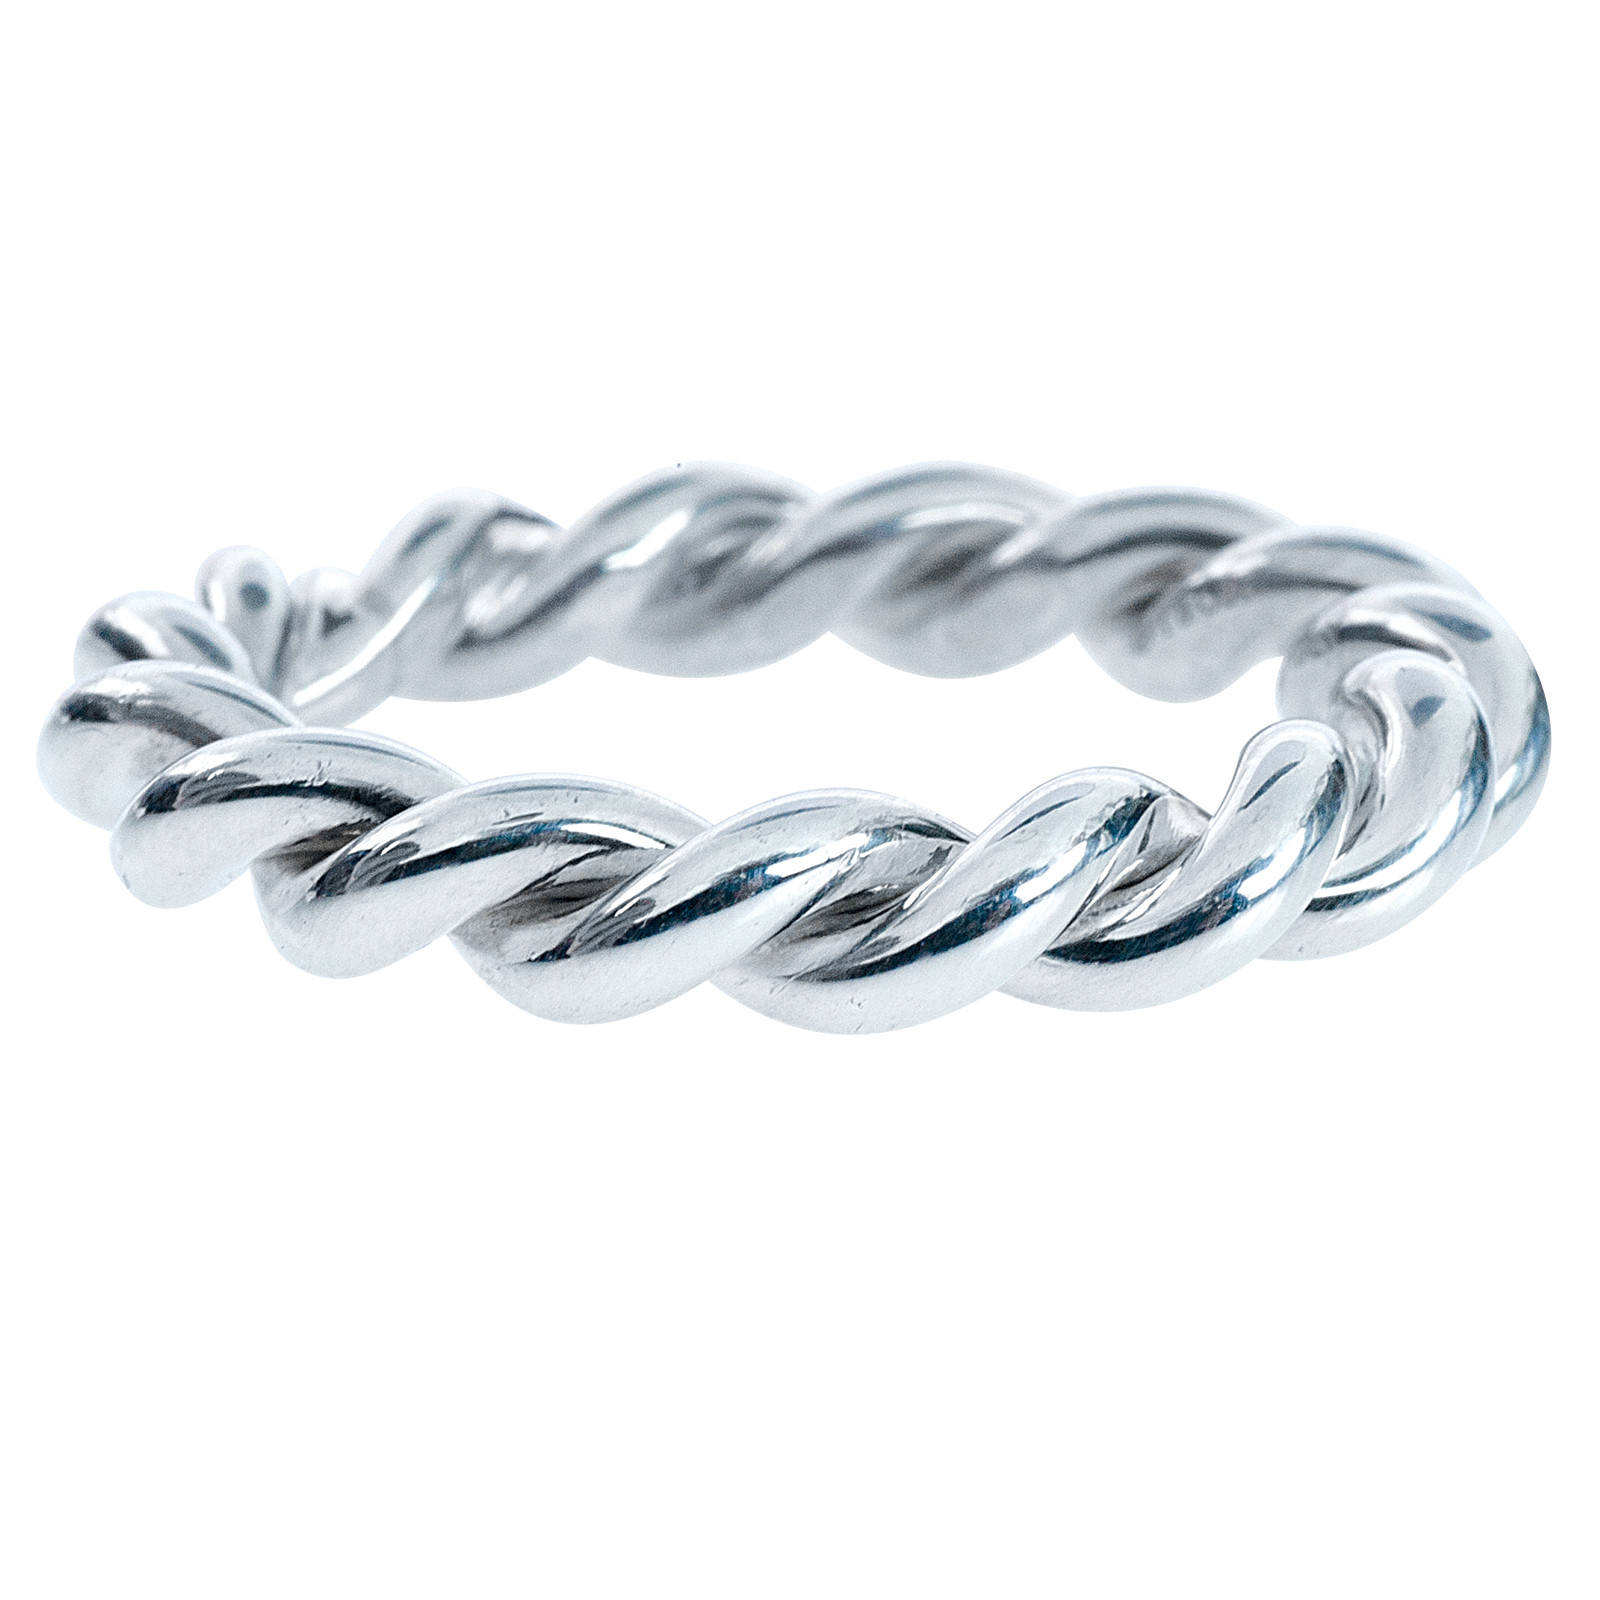 Vintage Tiffany & Co. Twist Rope Ring